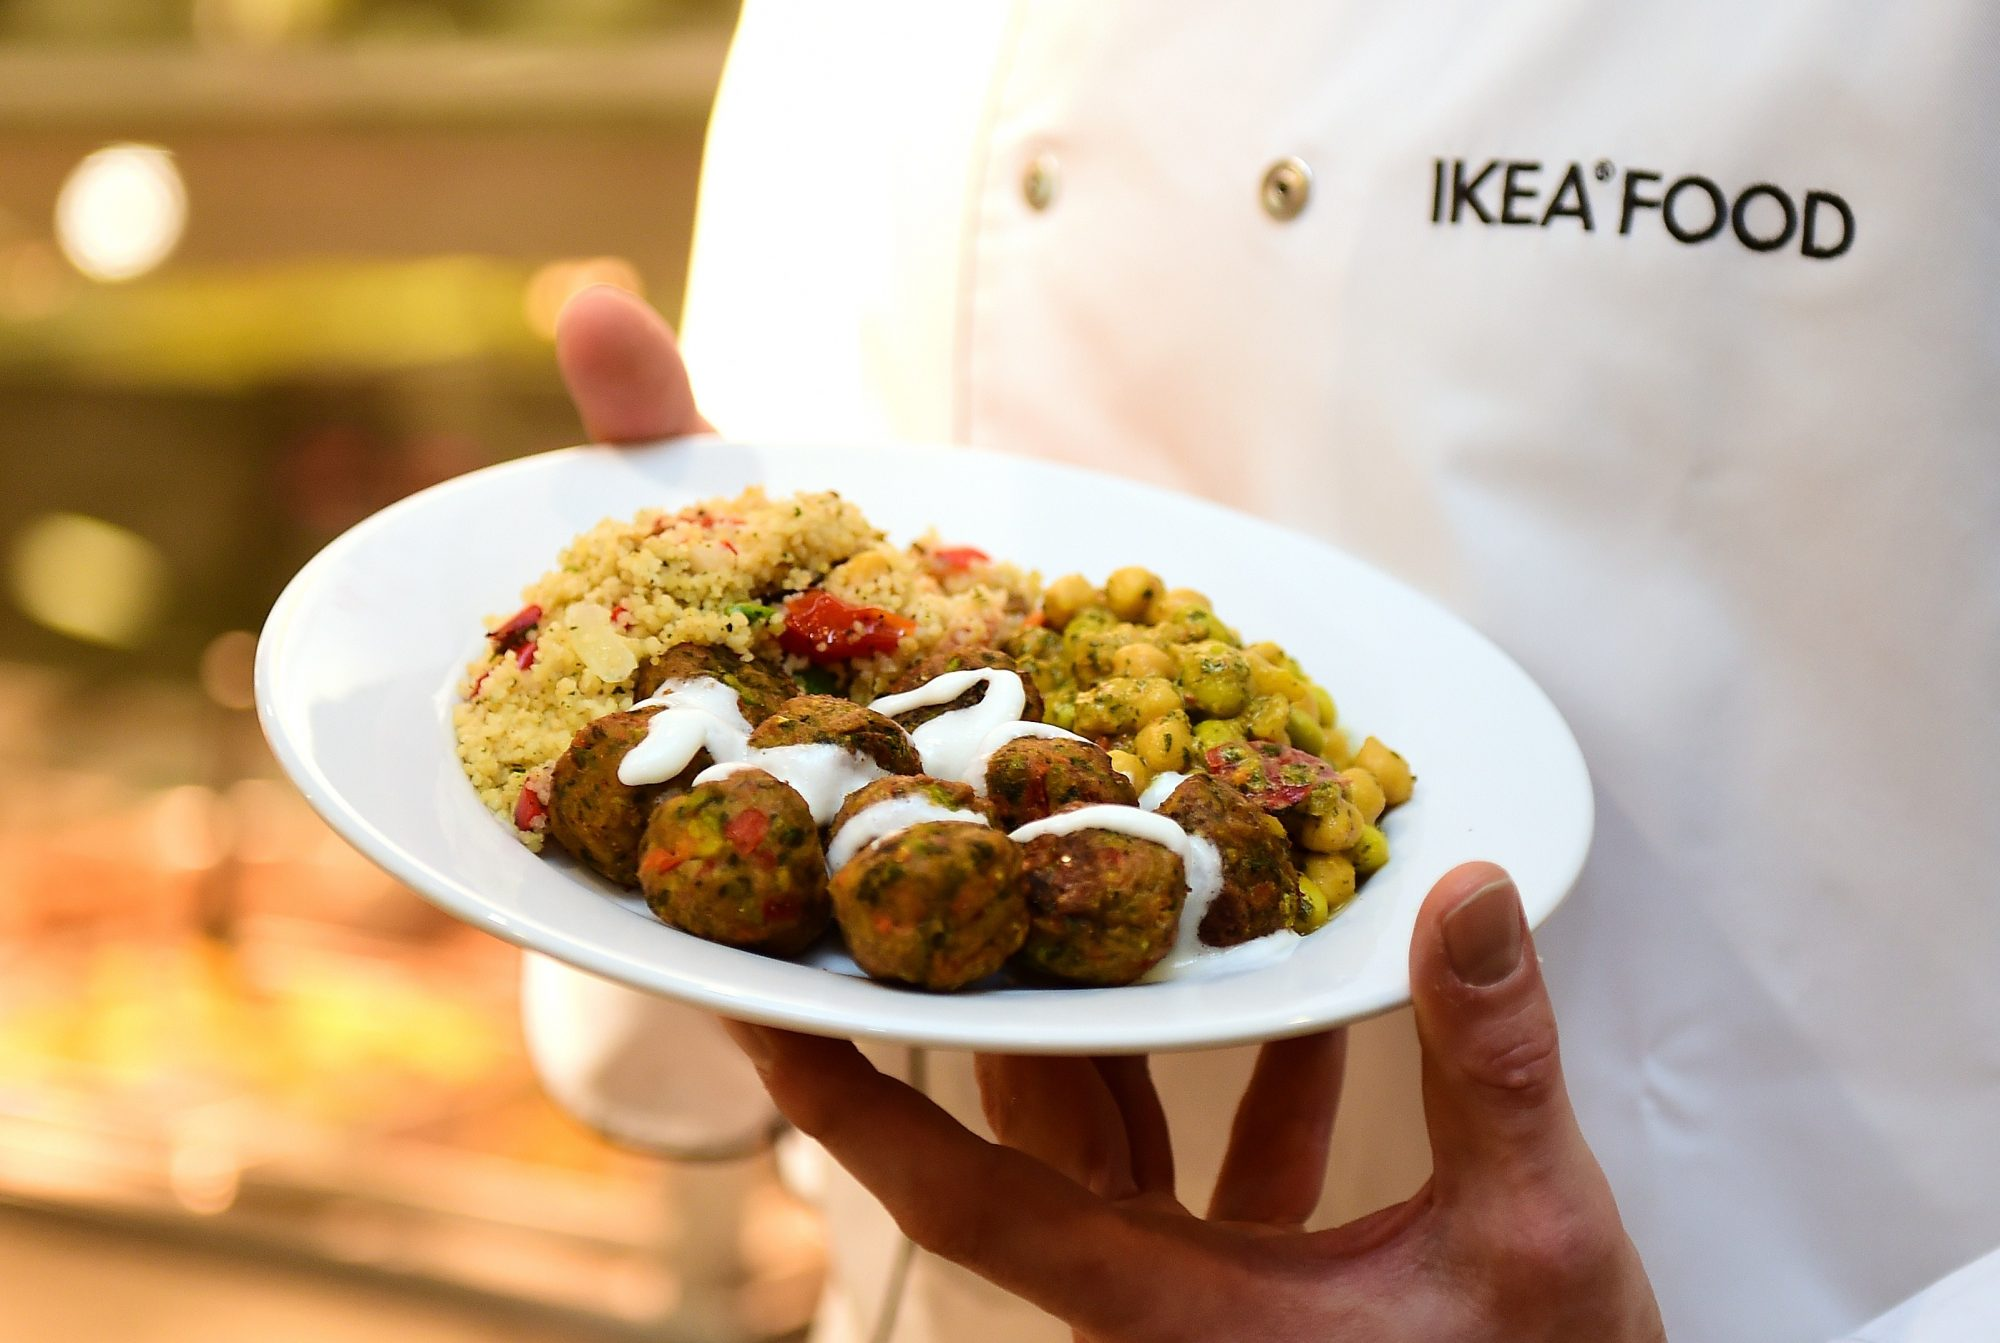 Ikea Is Now Testing Food Delivery